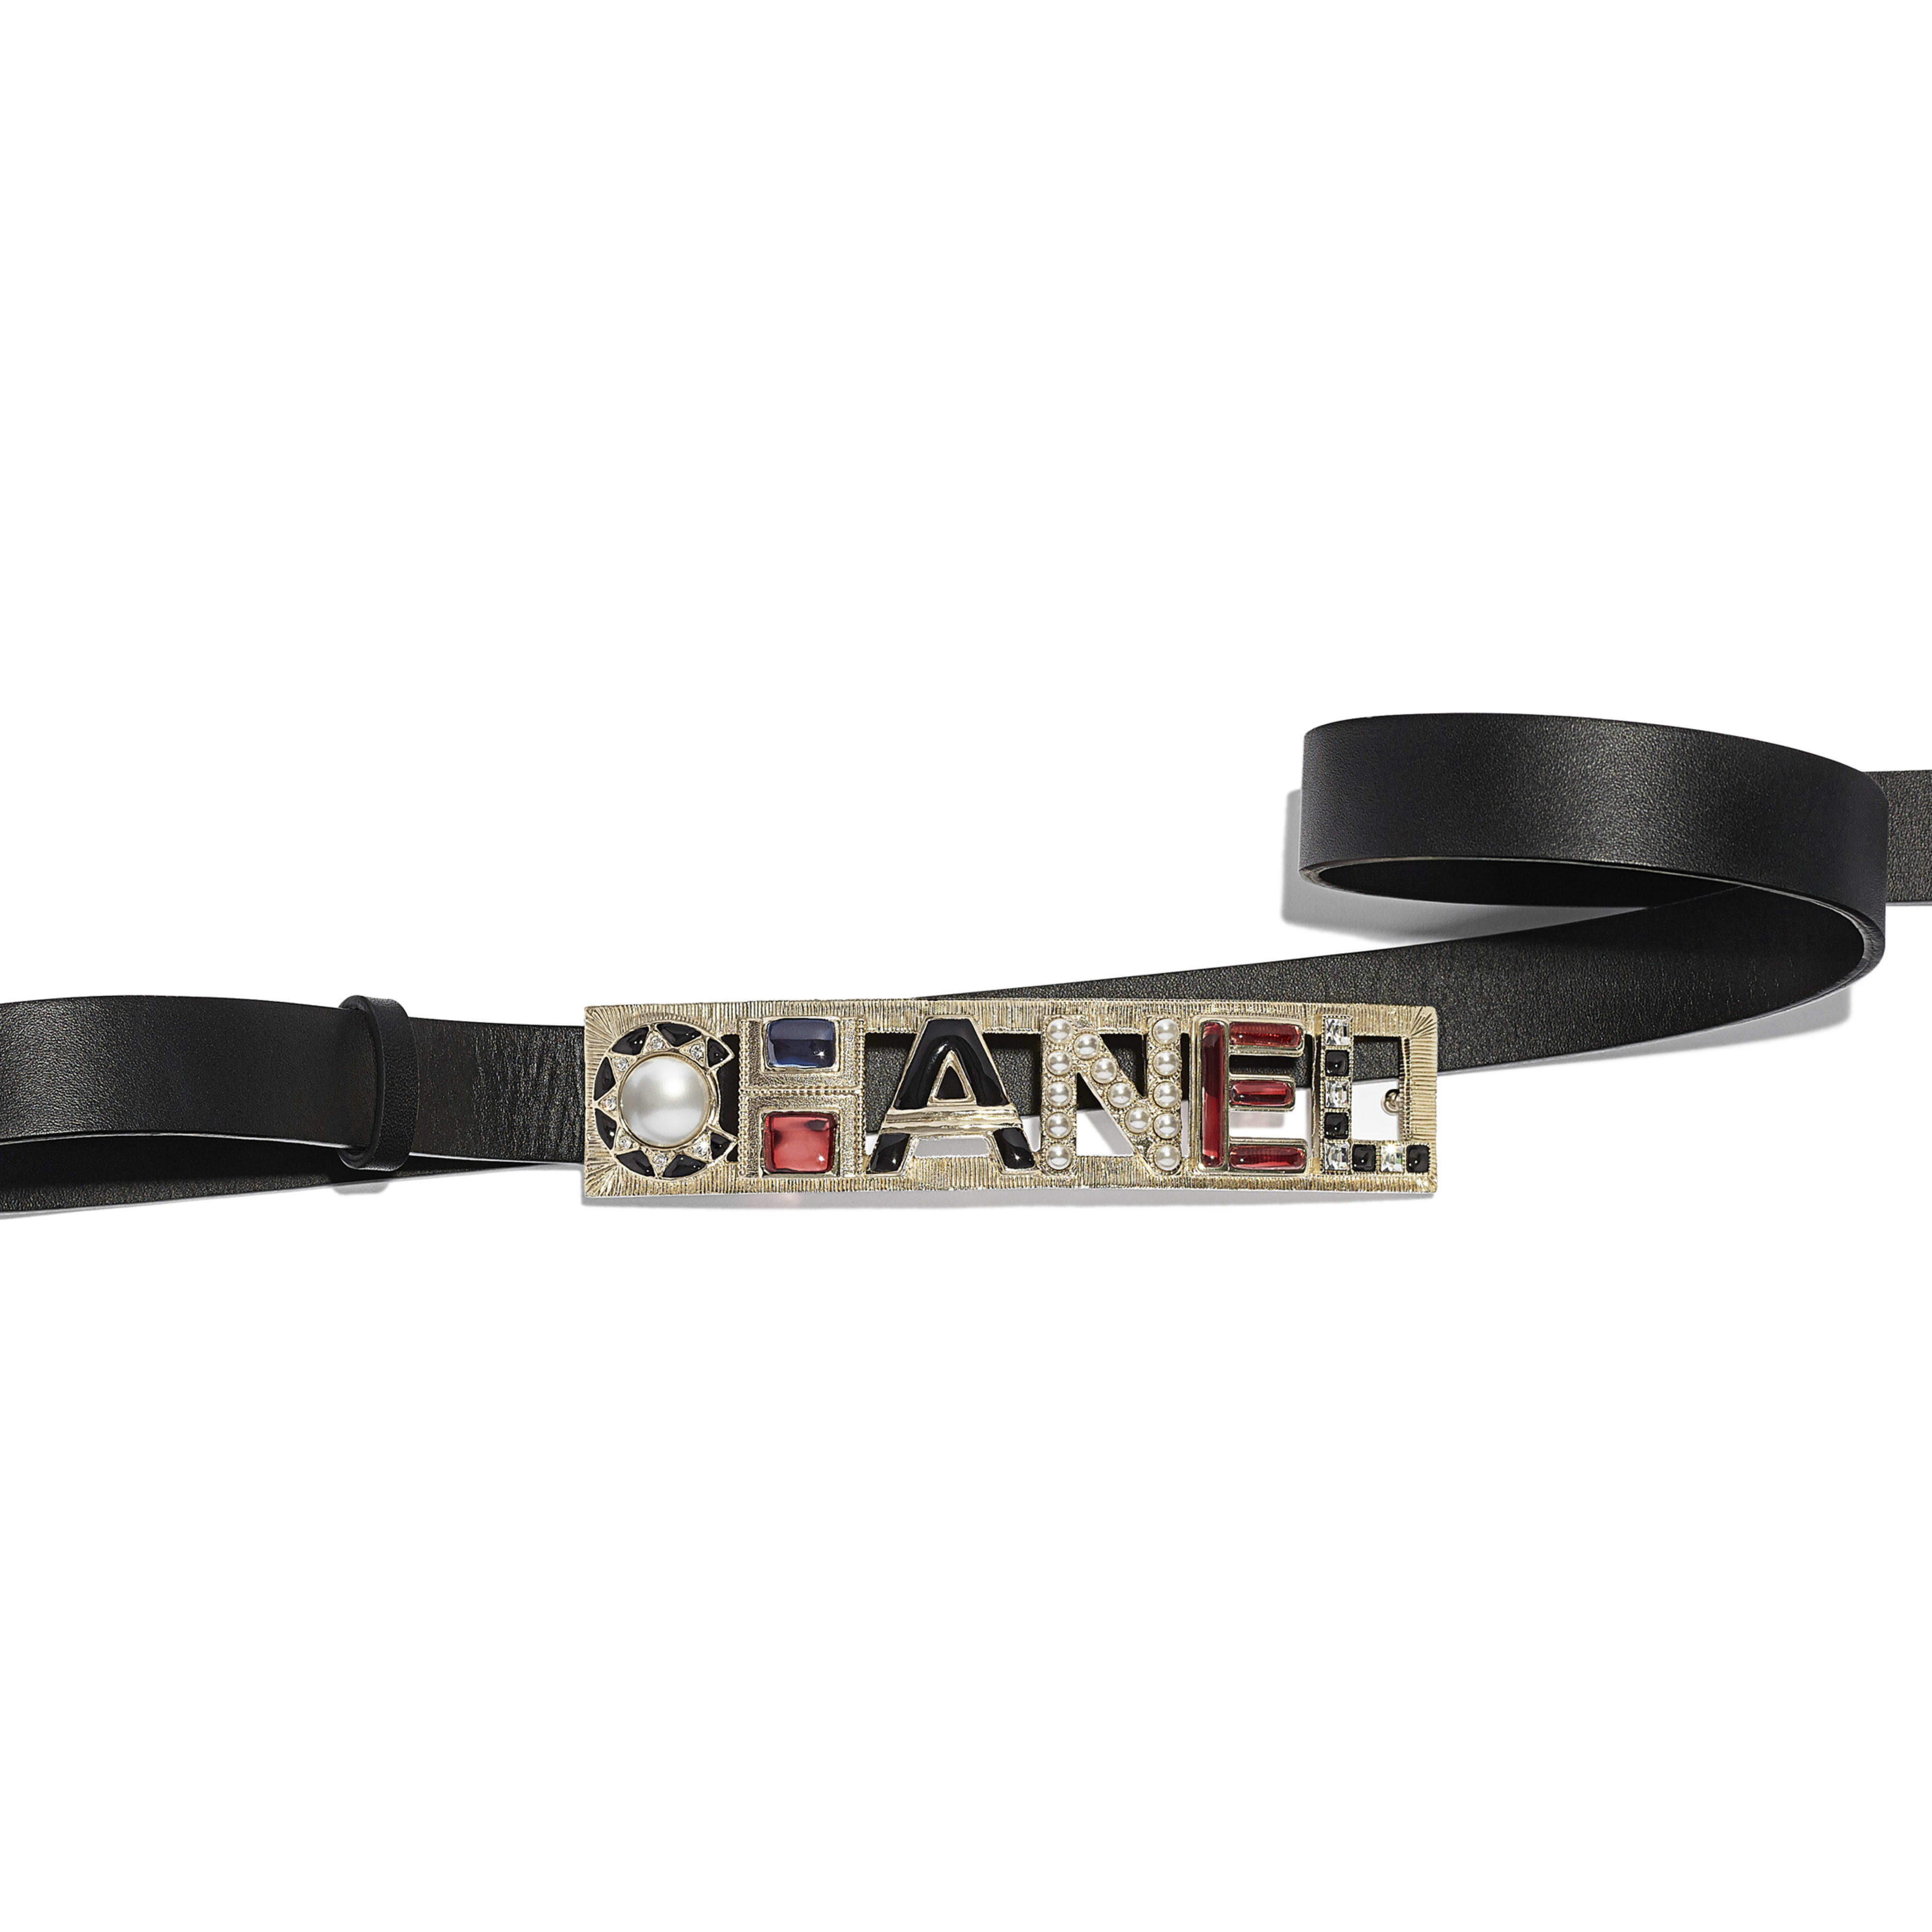 Belt - Black & Red - Calfskin, Gold-Tone Metal, Strass, Glass & Resin - Alternative view - see full sized version